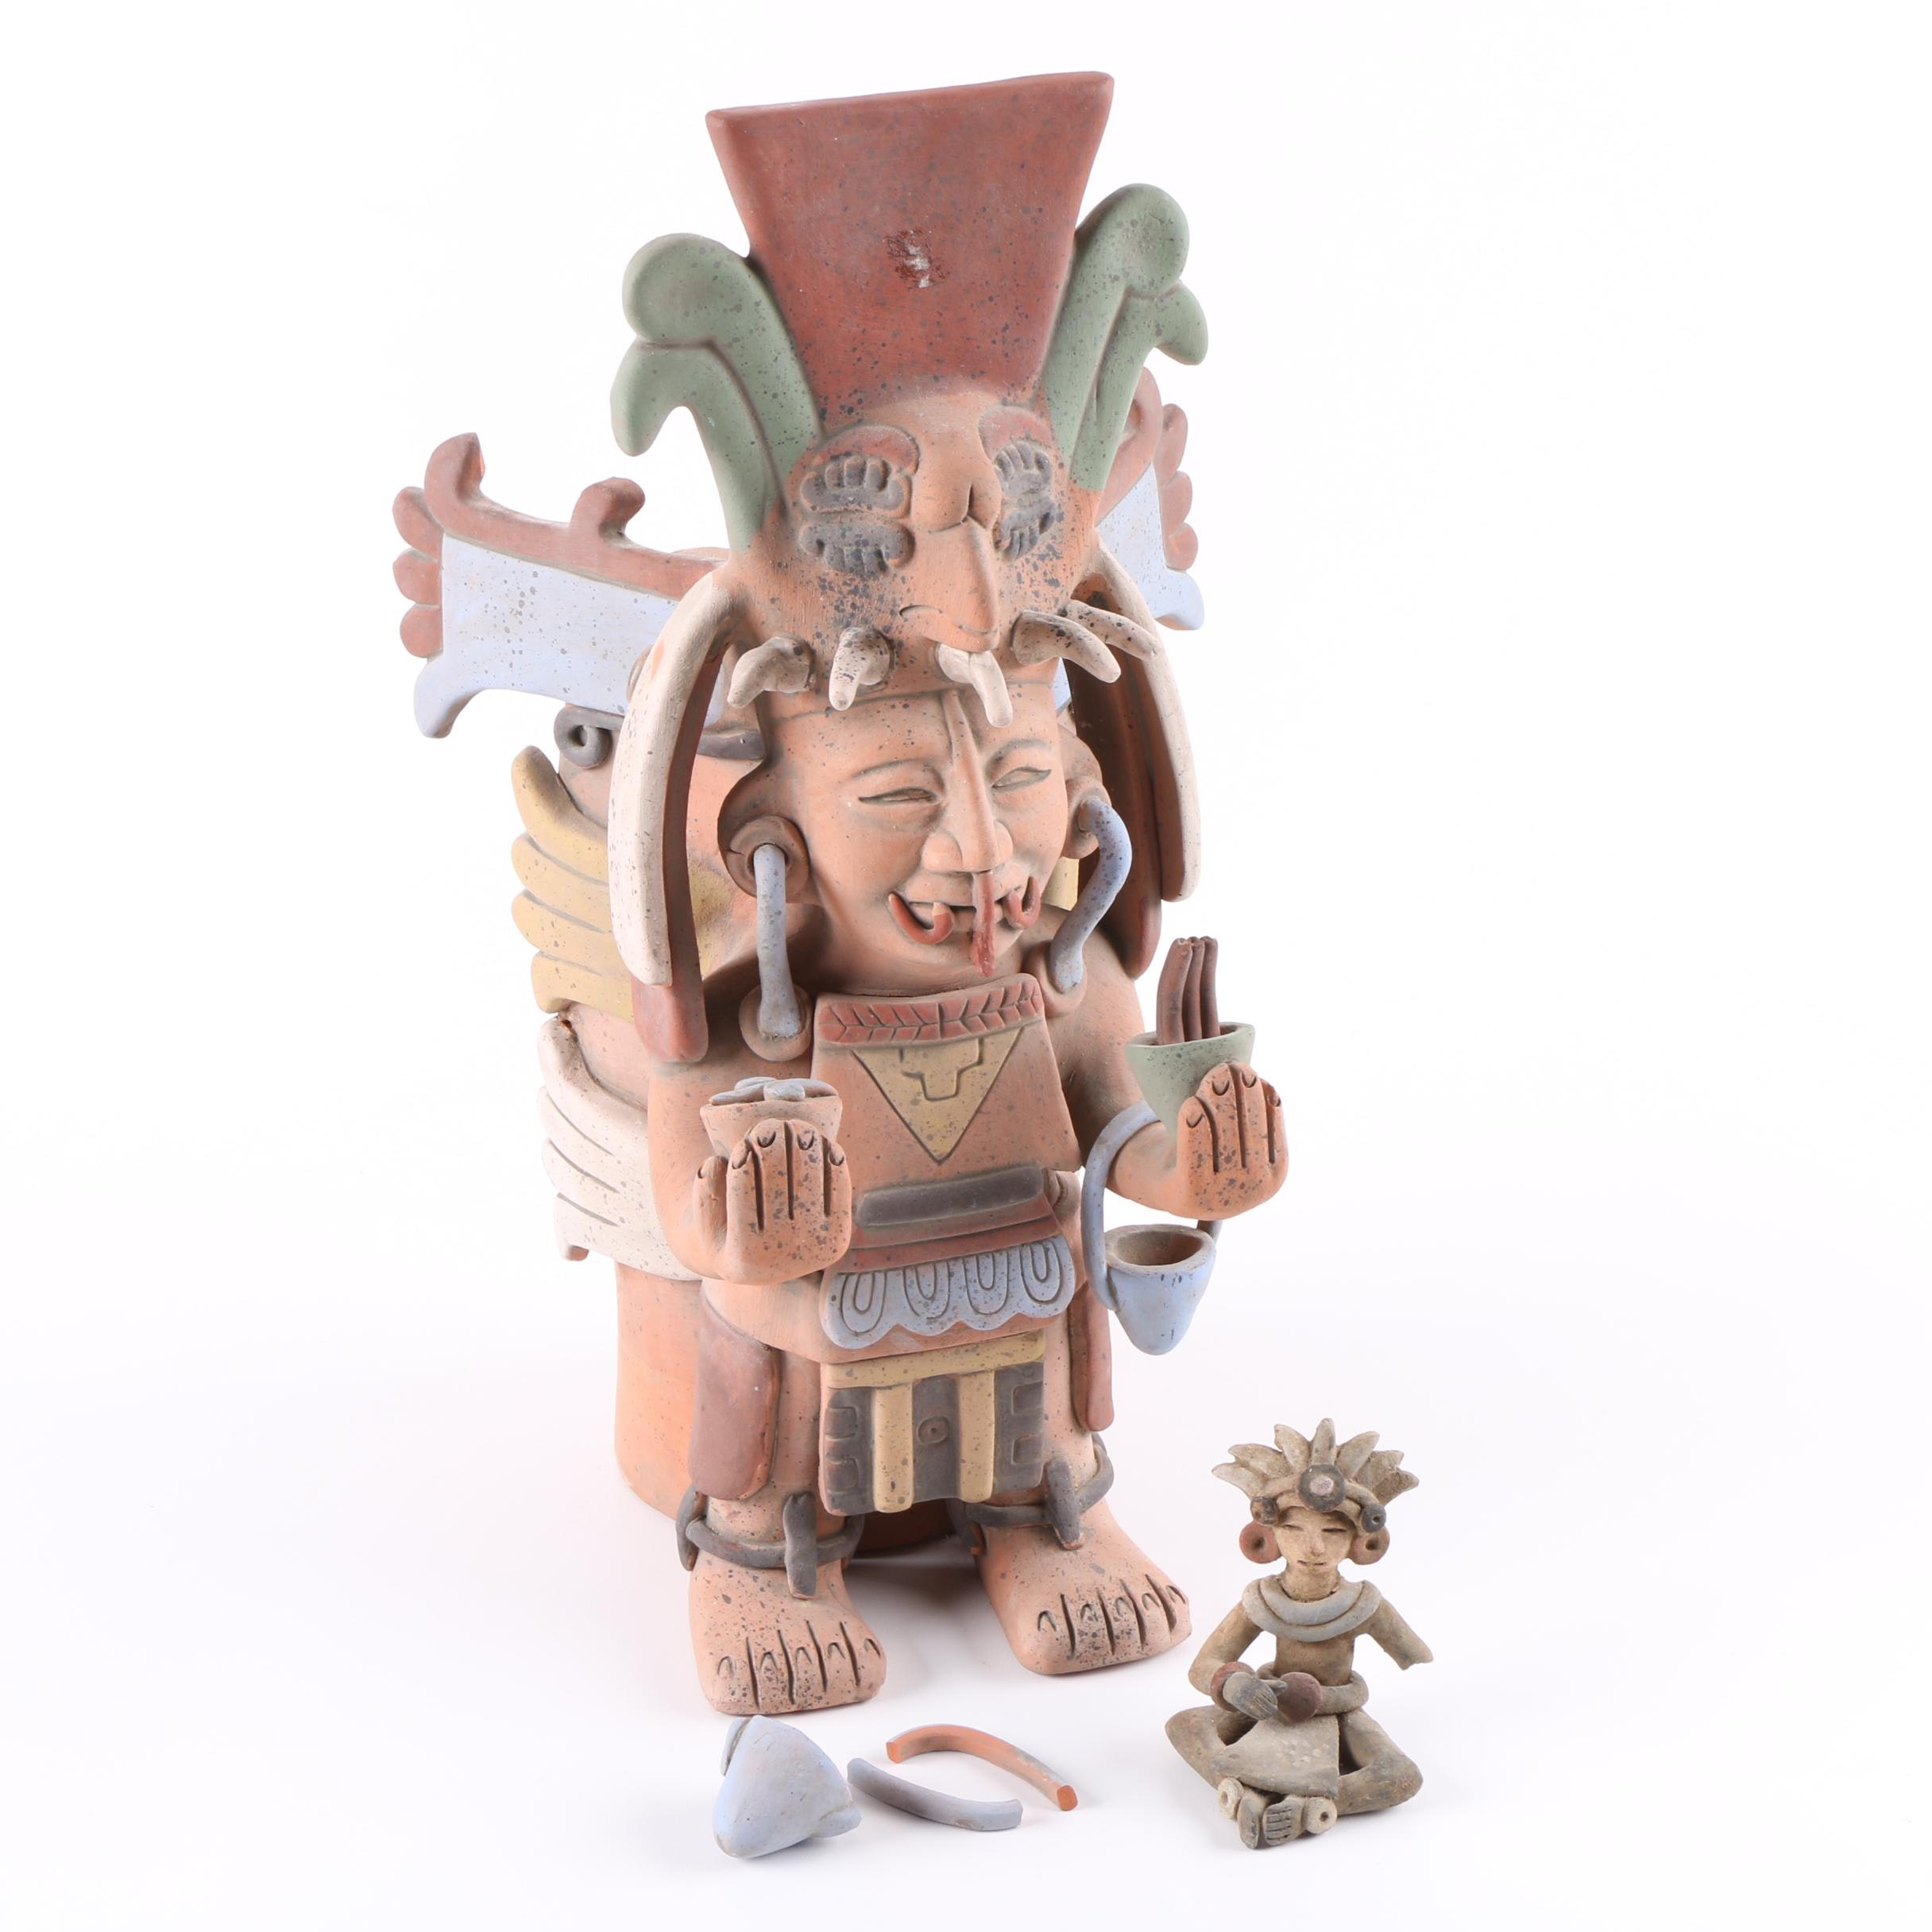 INAH Mexico Reproduction Mesoamerican Pottery and Figure